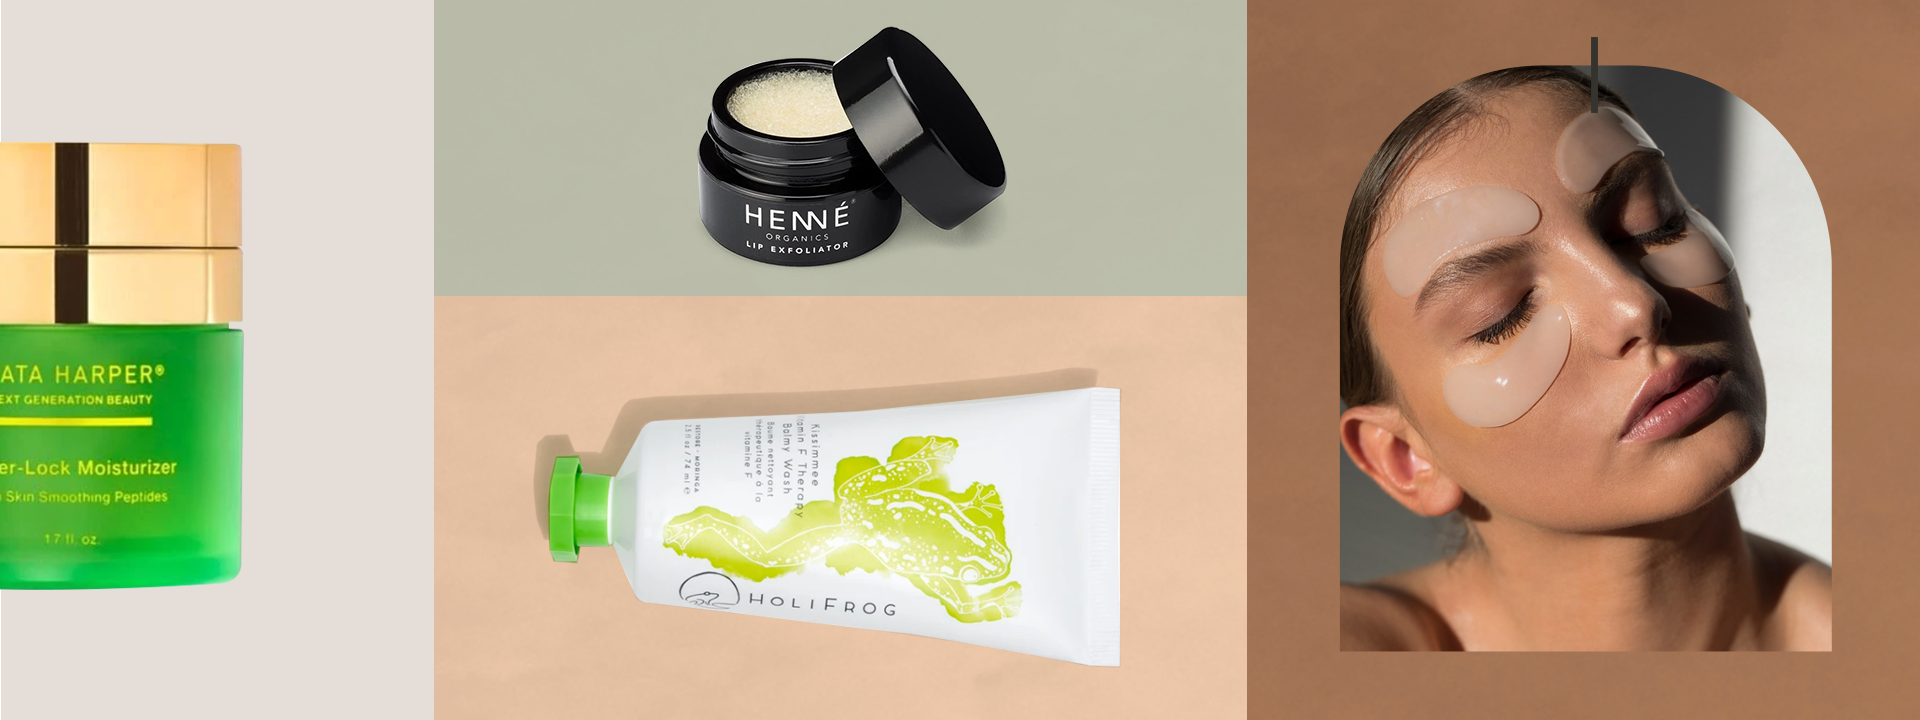 green skin care product, tube of product, small pot of product, and a woman wearing four patches